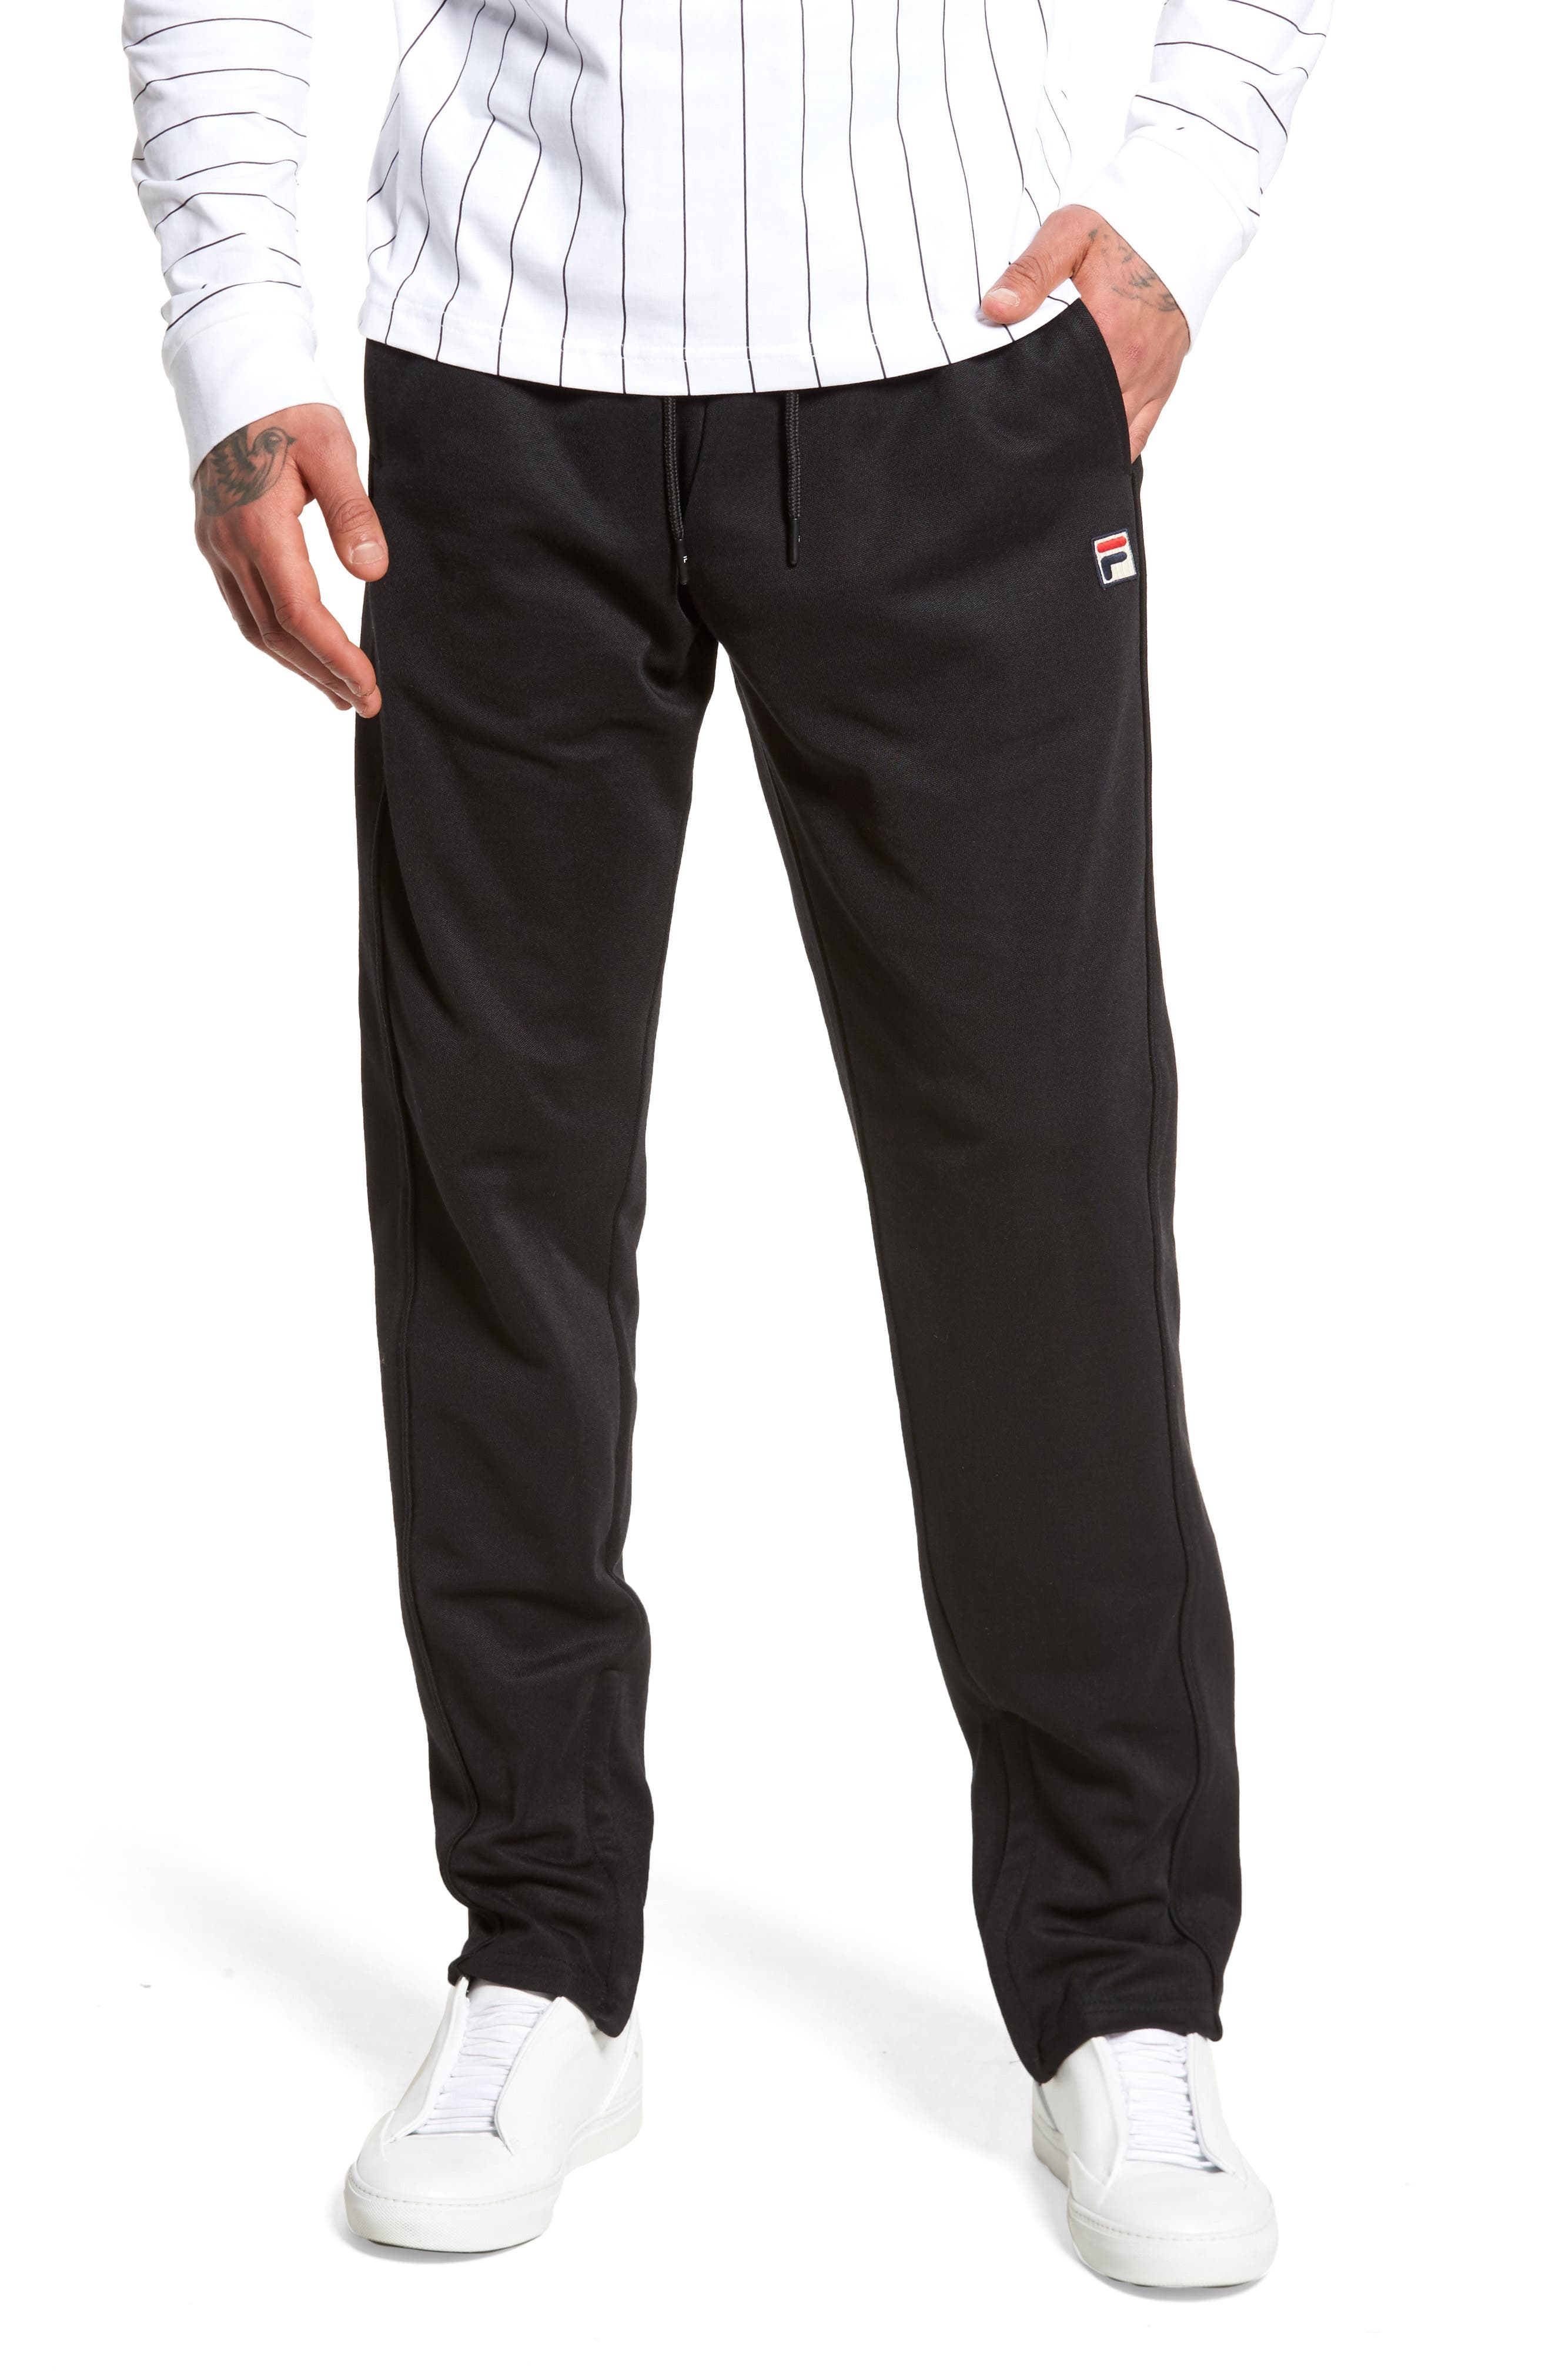 Alternate Image 1 Selected - FILA Bianchi Pants